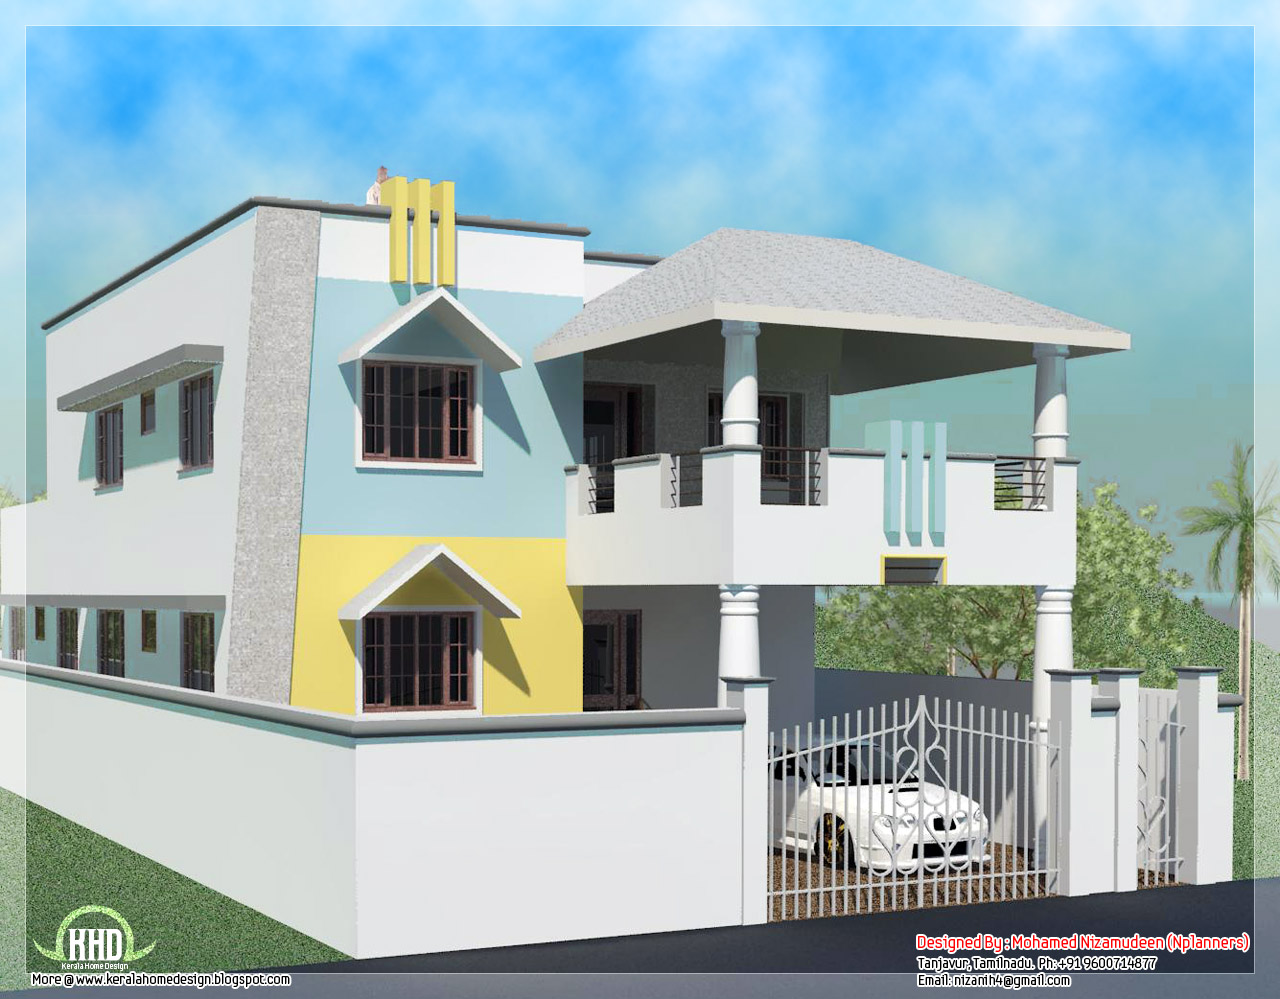 tamil nadu house plans with photos amazing house plans modern contemporary tamil nadu home design 1200 sq ft house plans india